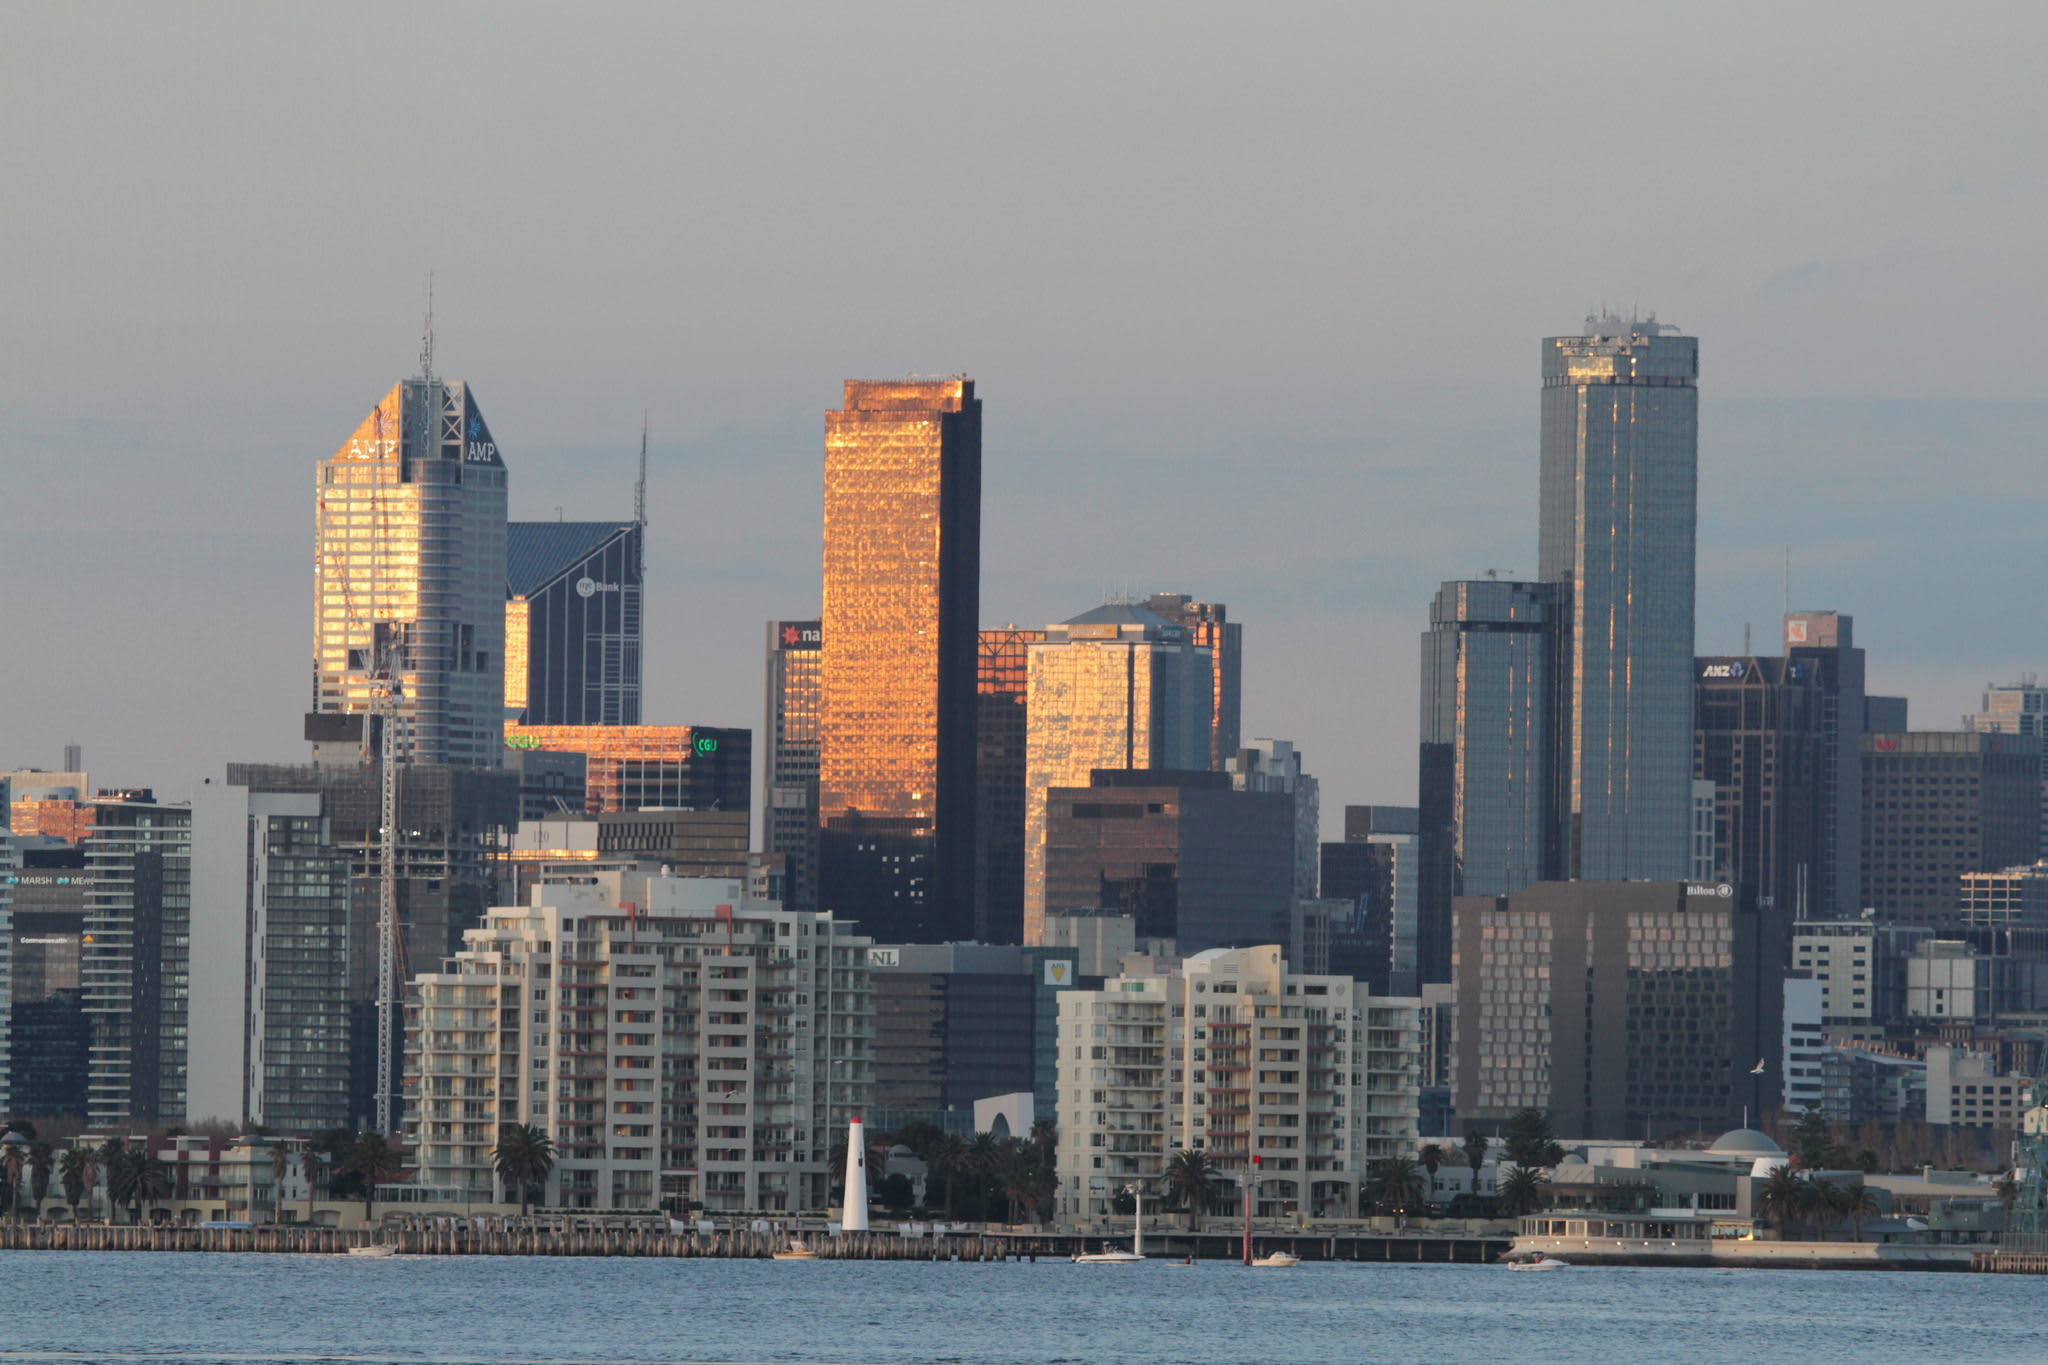 Smart cities wouldn't let housing costs drive the worse-off into deeper disadvantage